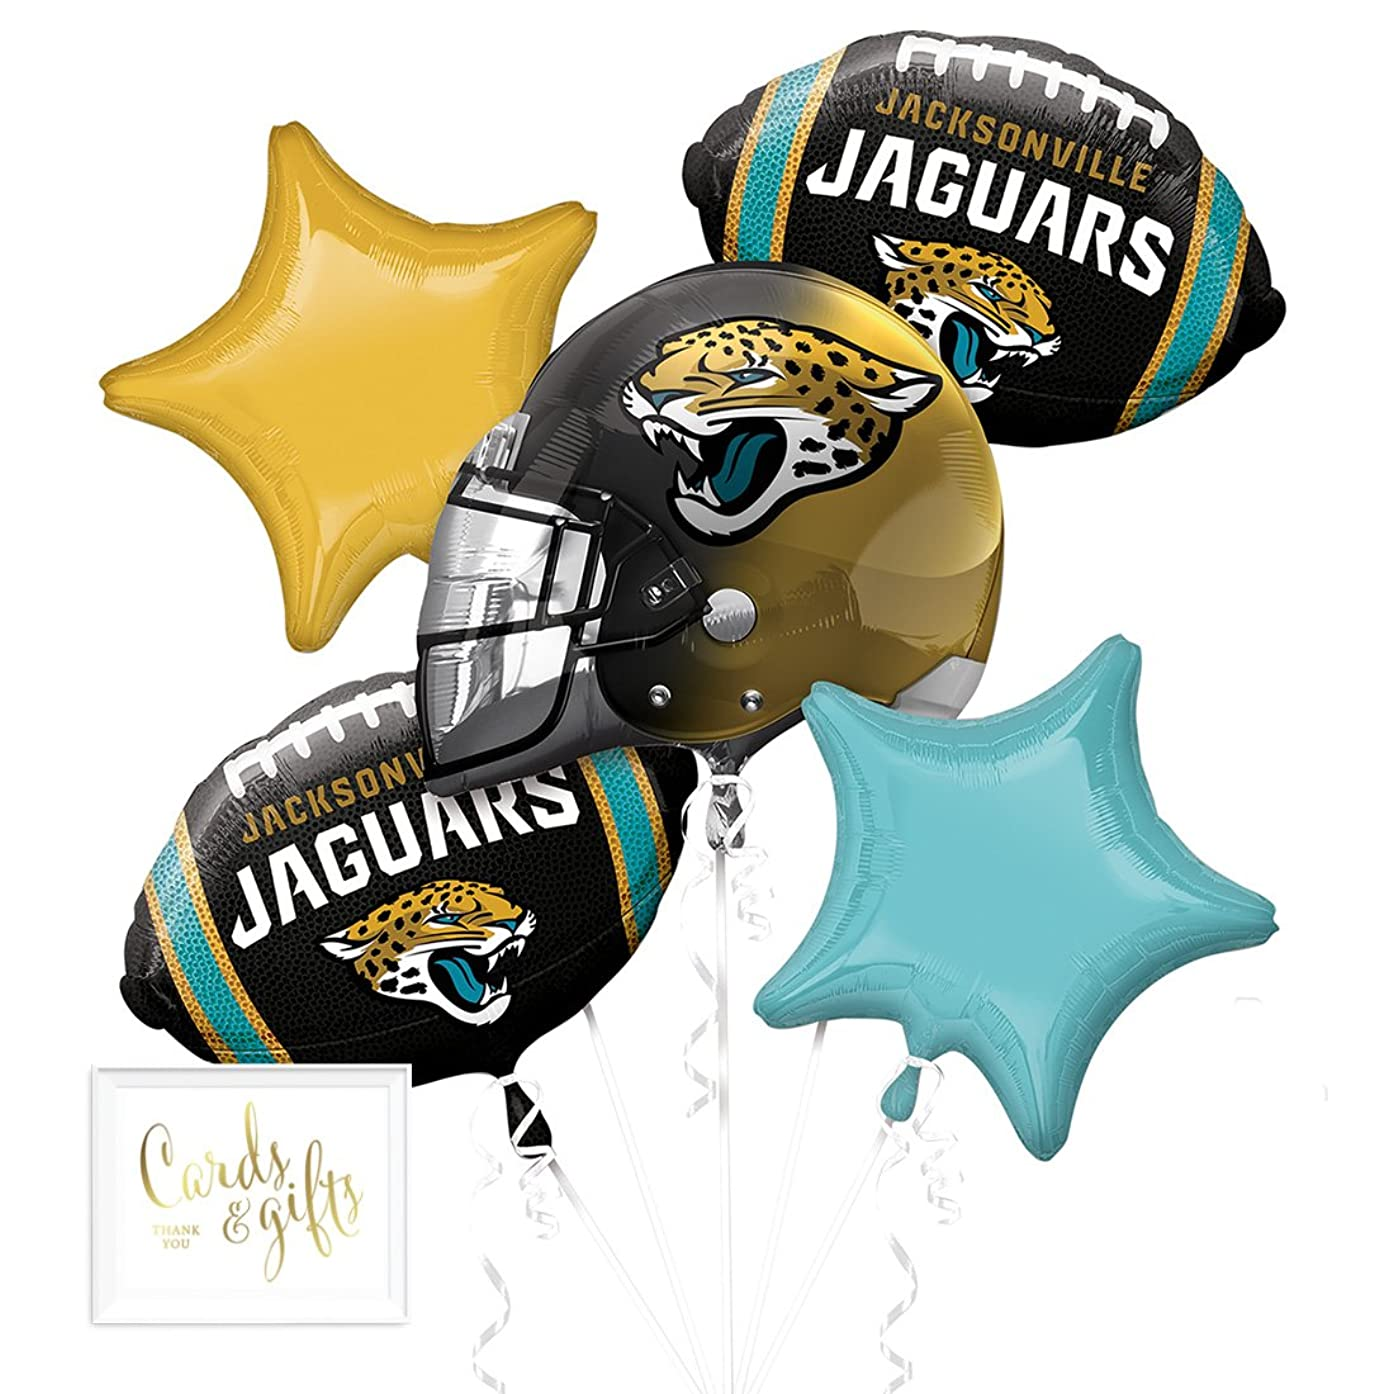 Andaz Press Balloon Bouquet Party Kit with Gold Cards & Gifts Sign, Jaguars Football Themed Foil Mylar Balloon Decorations, 1-Set